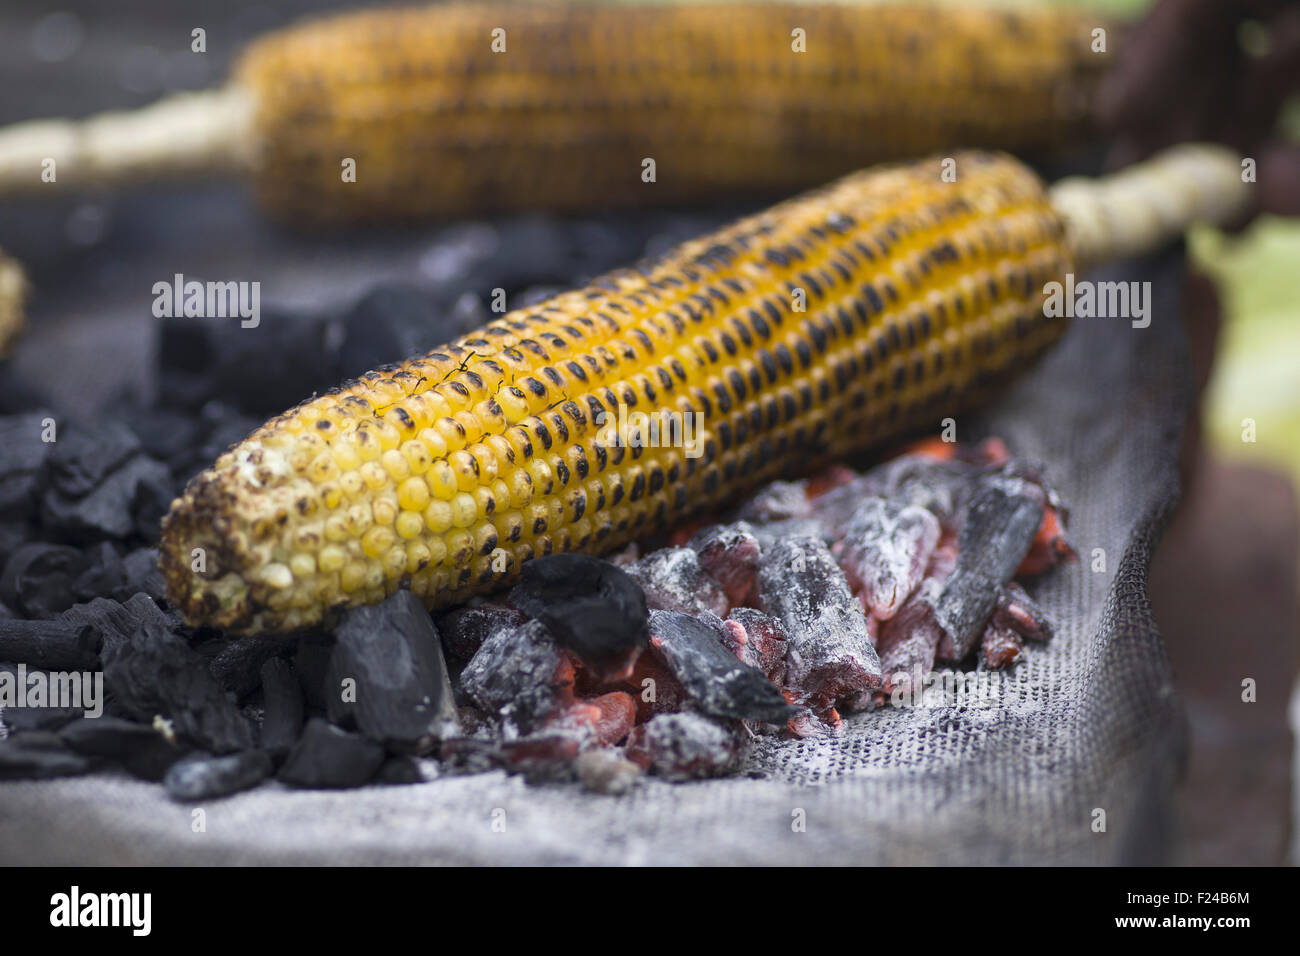 Indian Street food. Grilled Corn - Stock Image